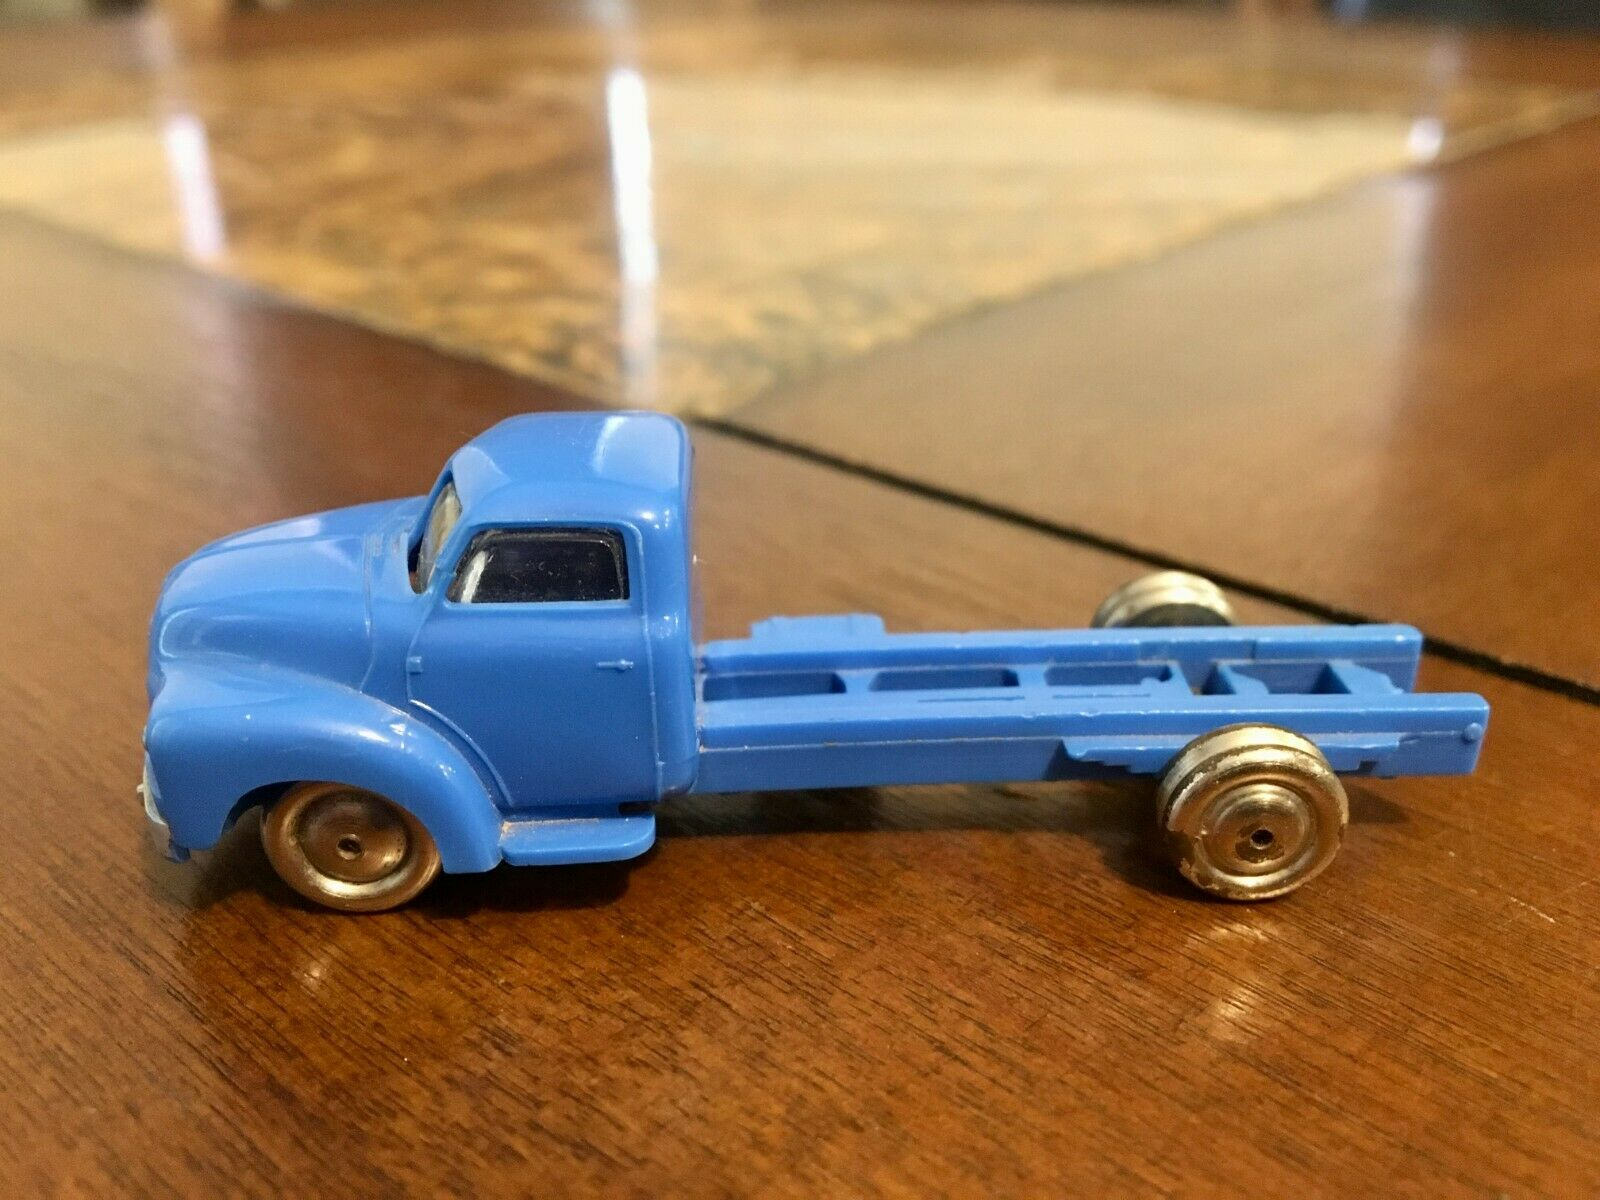 LEGO HO SCALE VINTAGE CLASSIC 1950'S BEDFORD Blau FLATBED TRUCK EXTREMELY RARE